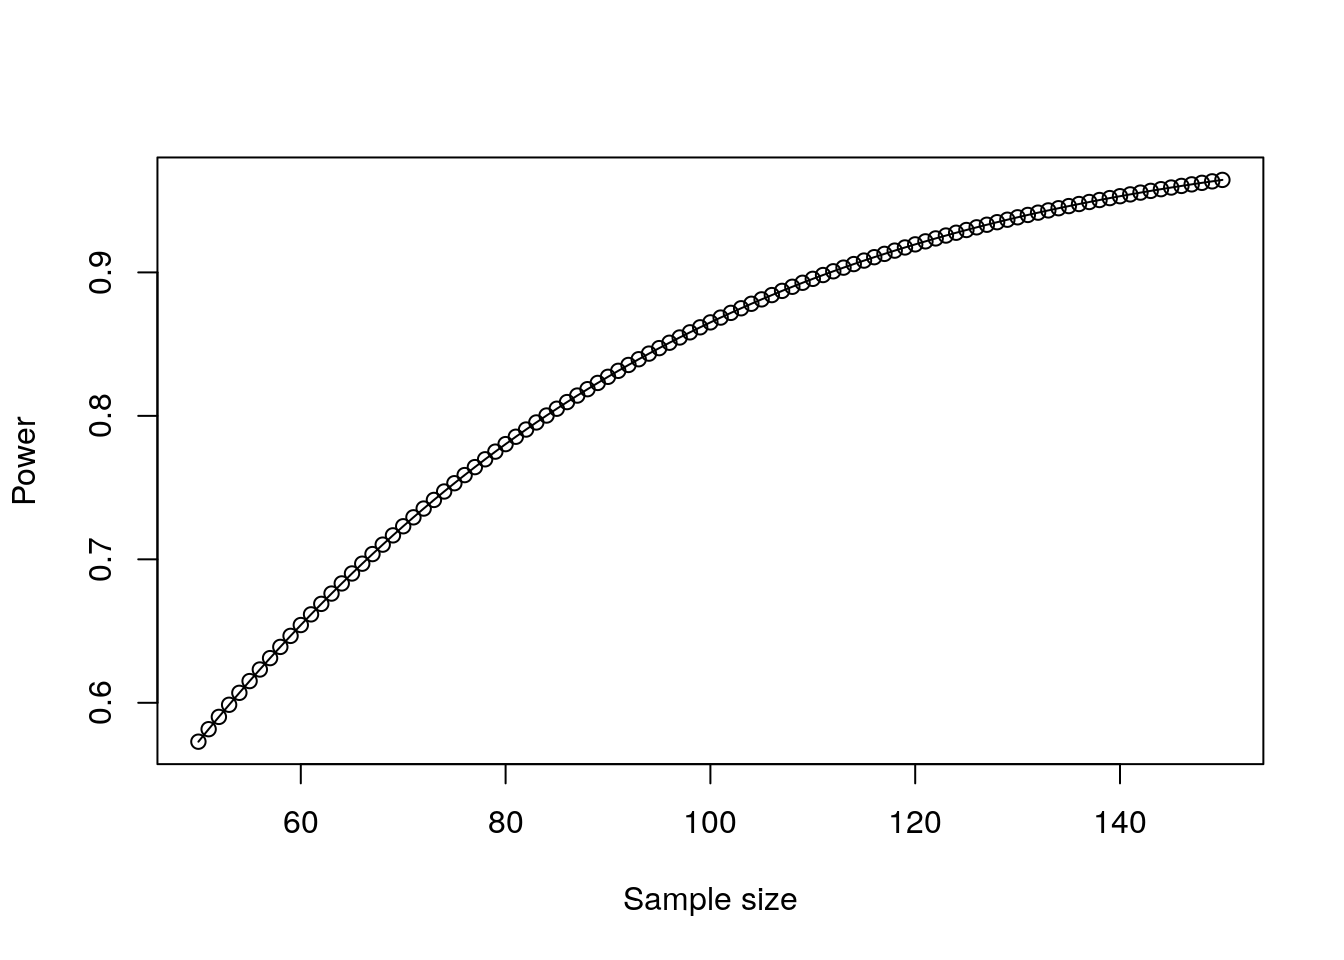 Plot of power against sample size for a correlation test